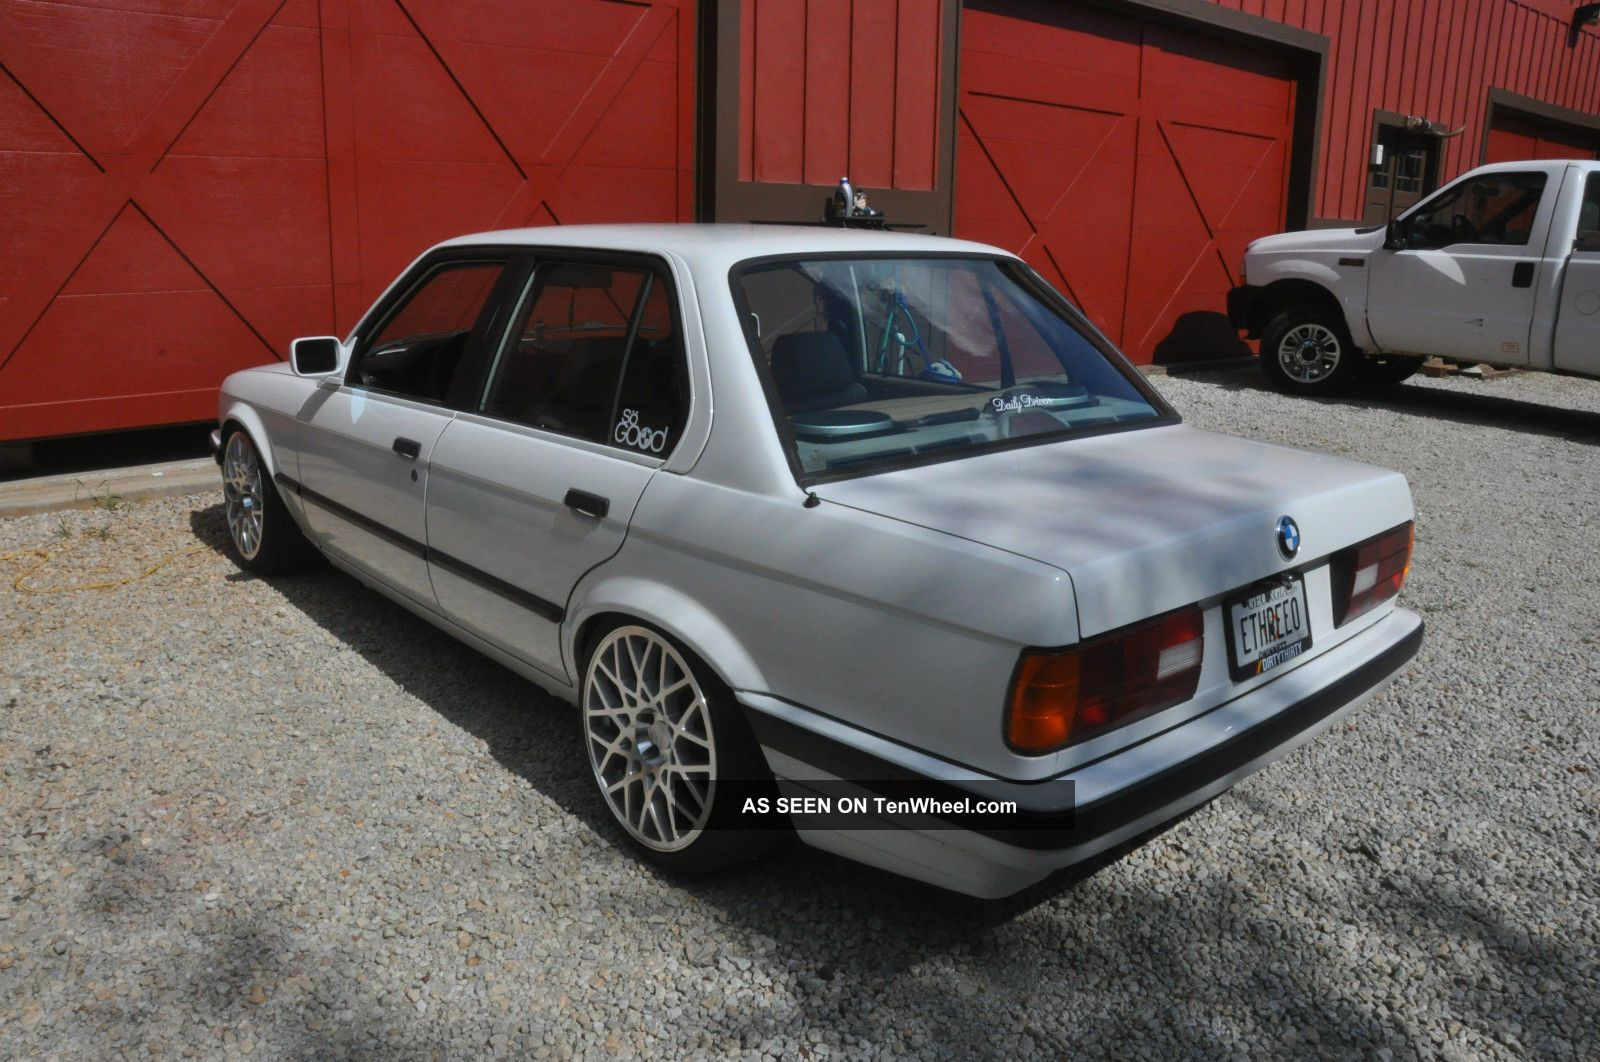 e30 1991 bmw 318i m52 swapped. Black Bedroom Furniture Sets. Home Design Ideas